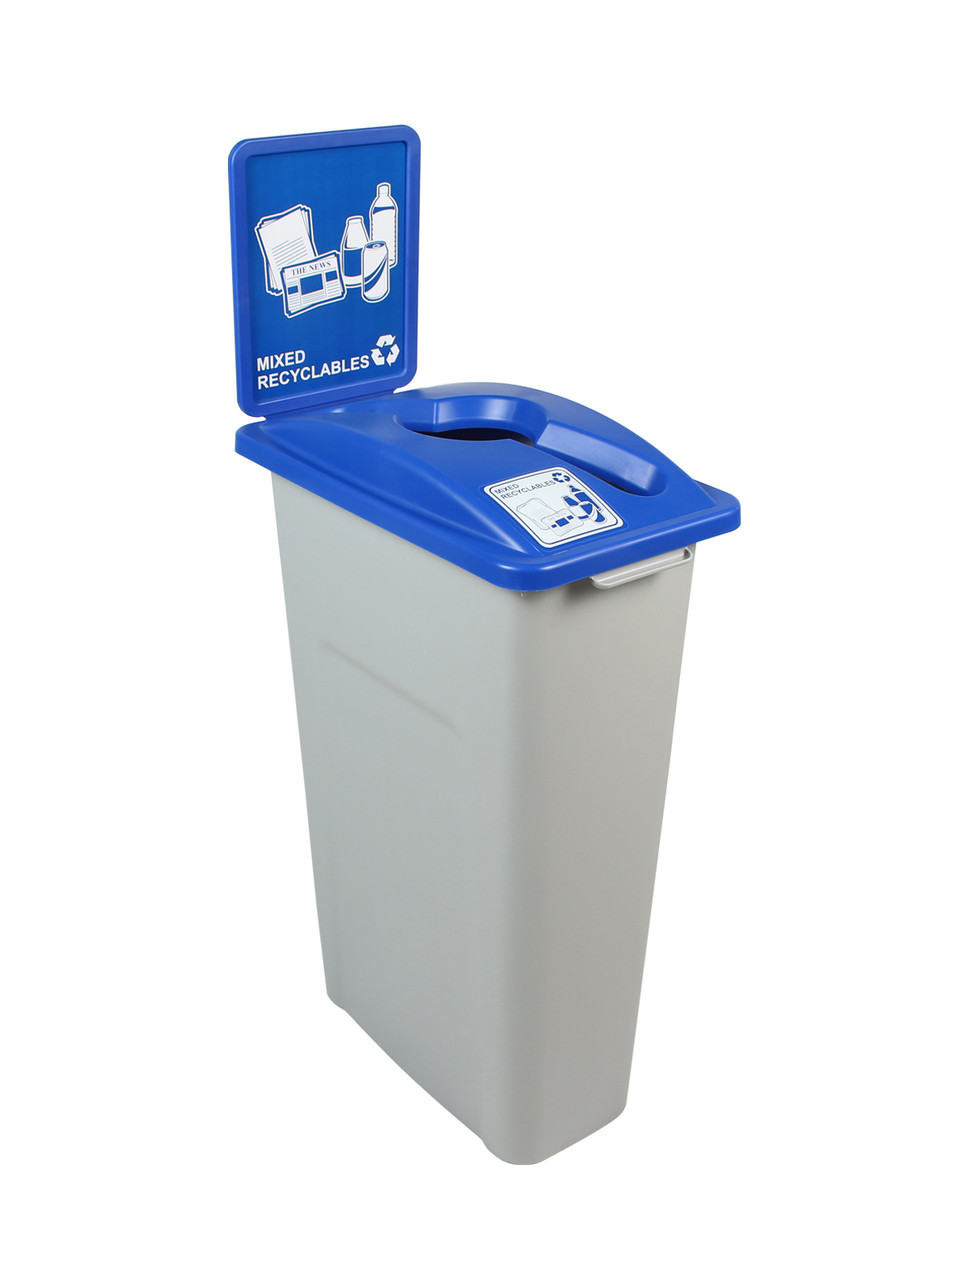 23 Gallon Skinny Simple Sort Recycle Bin with Sign (Mixed Recyclables)